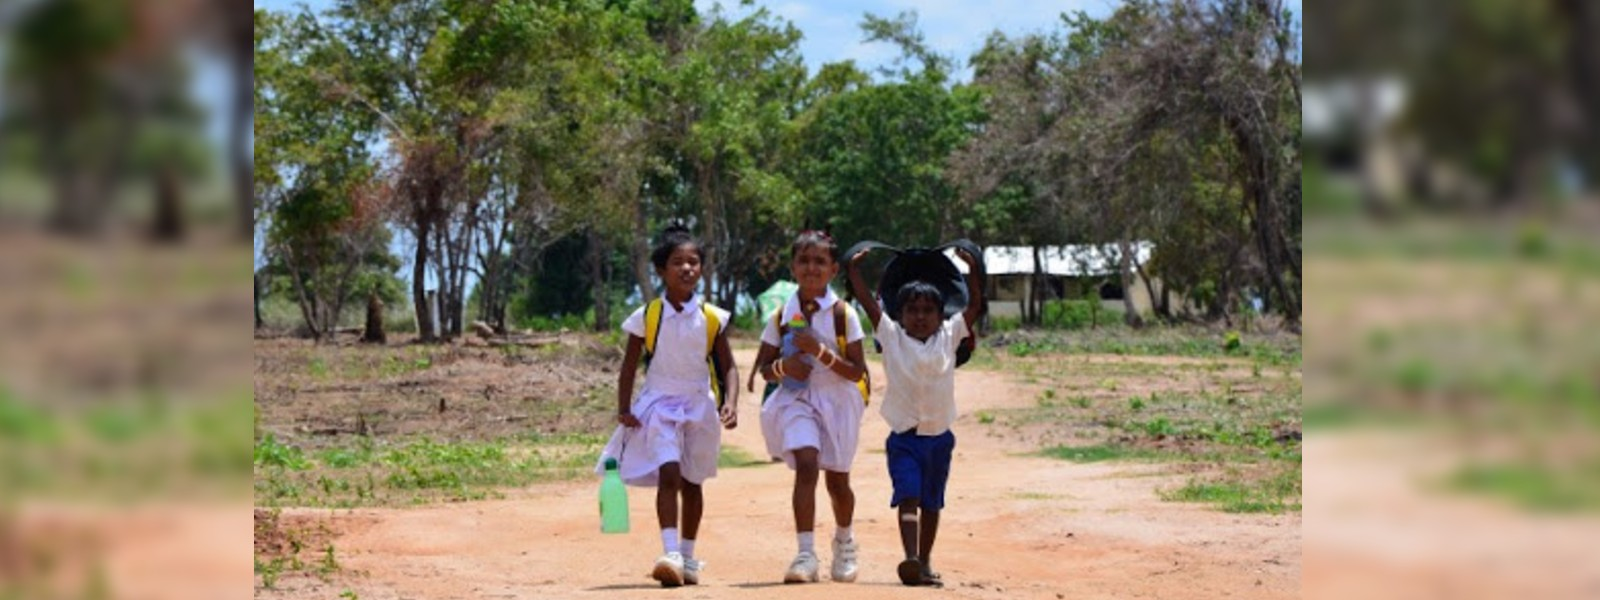 40% of School students have no access to distance education